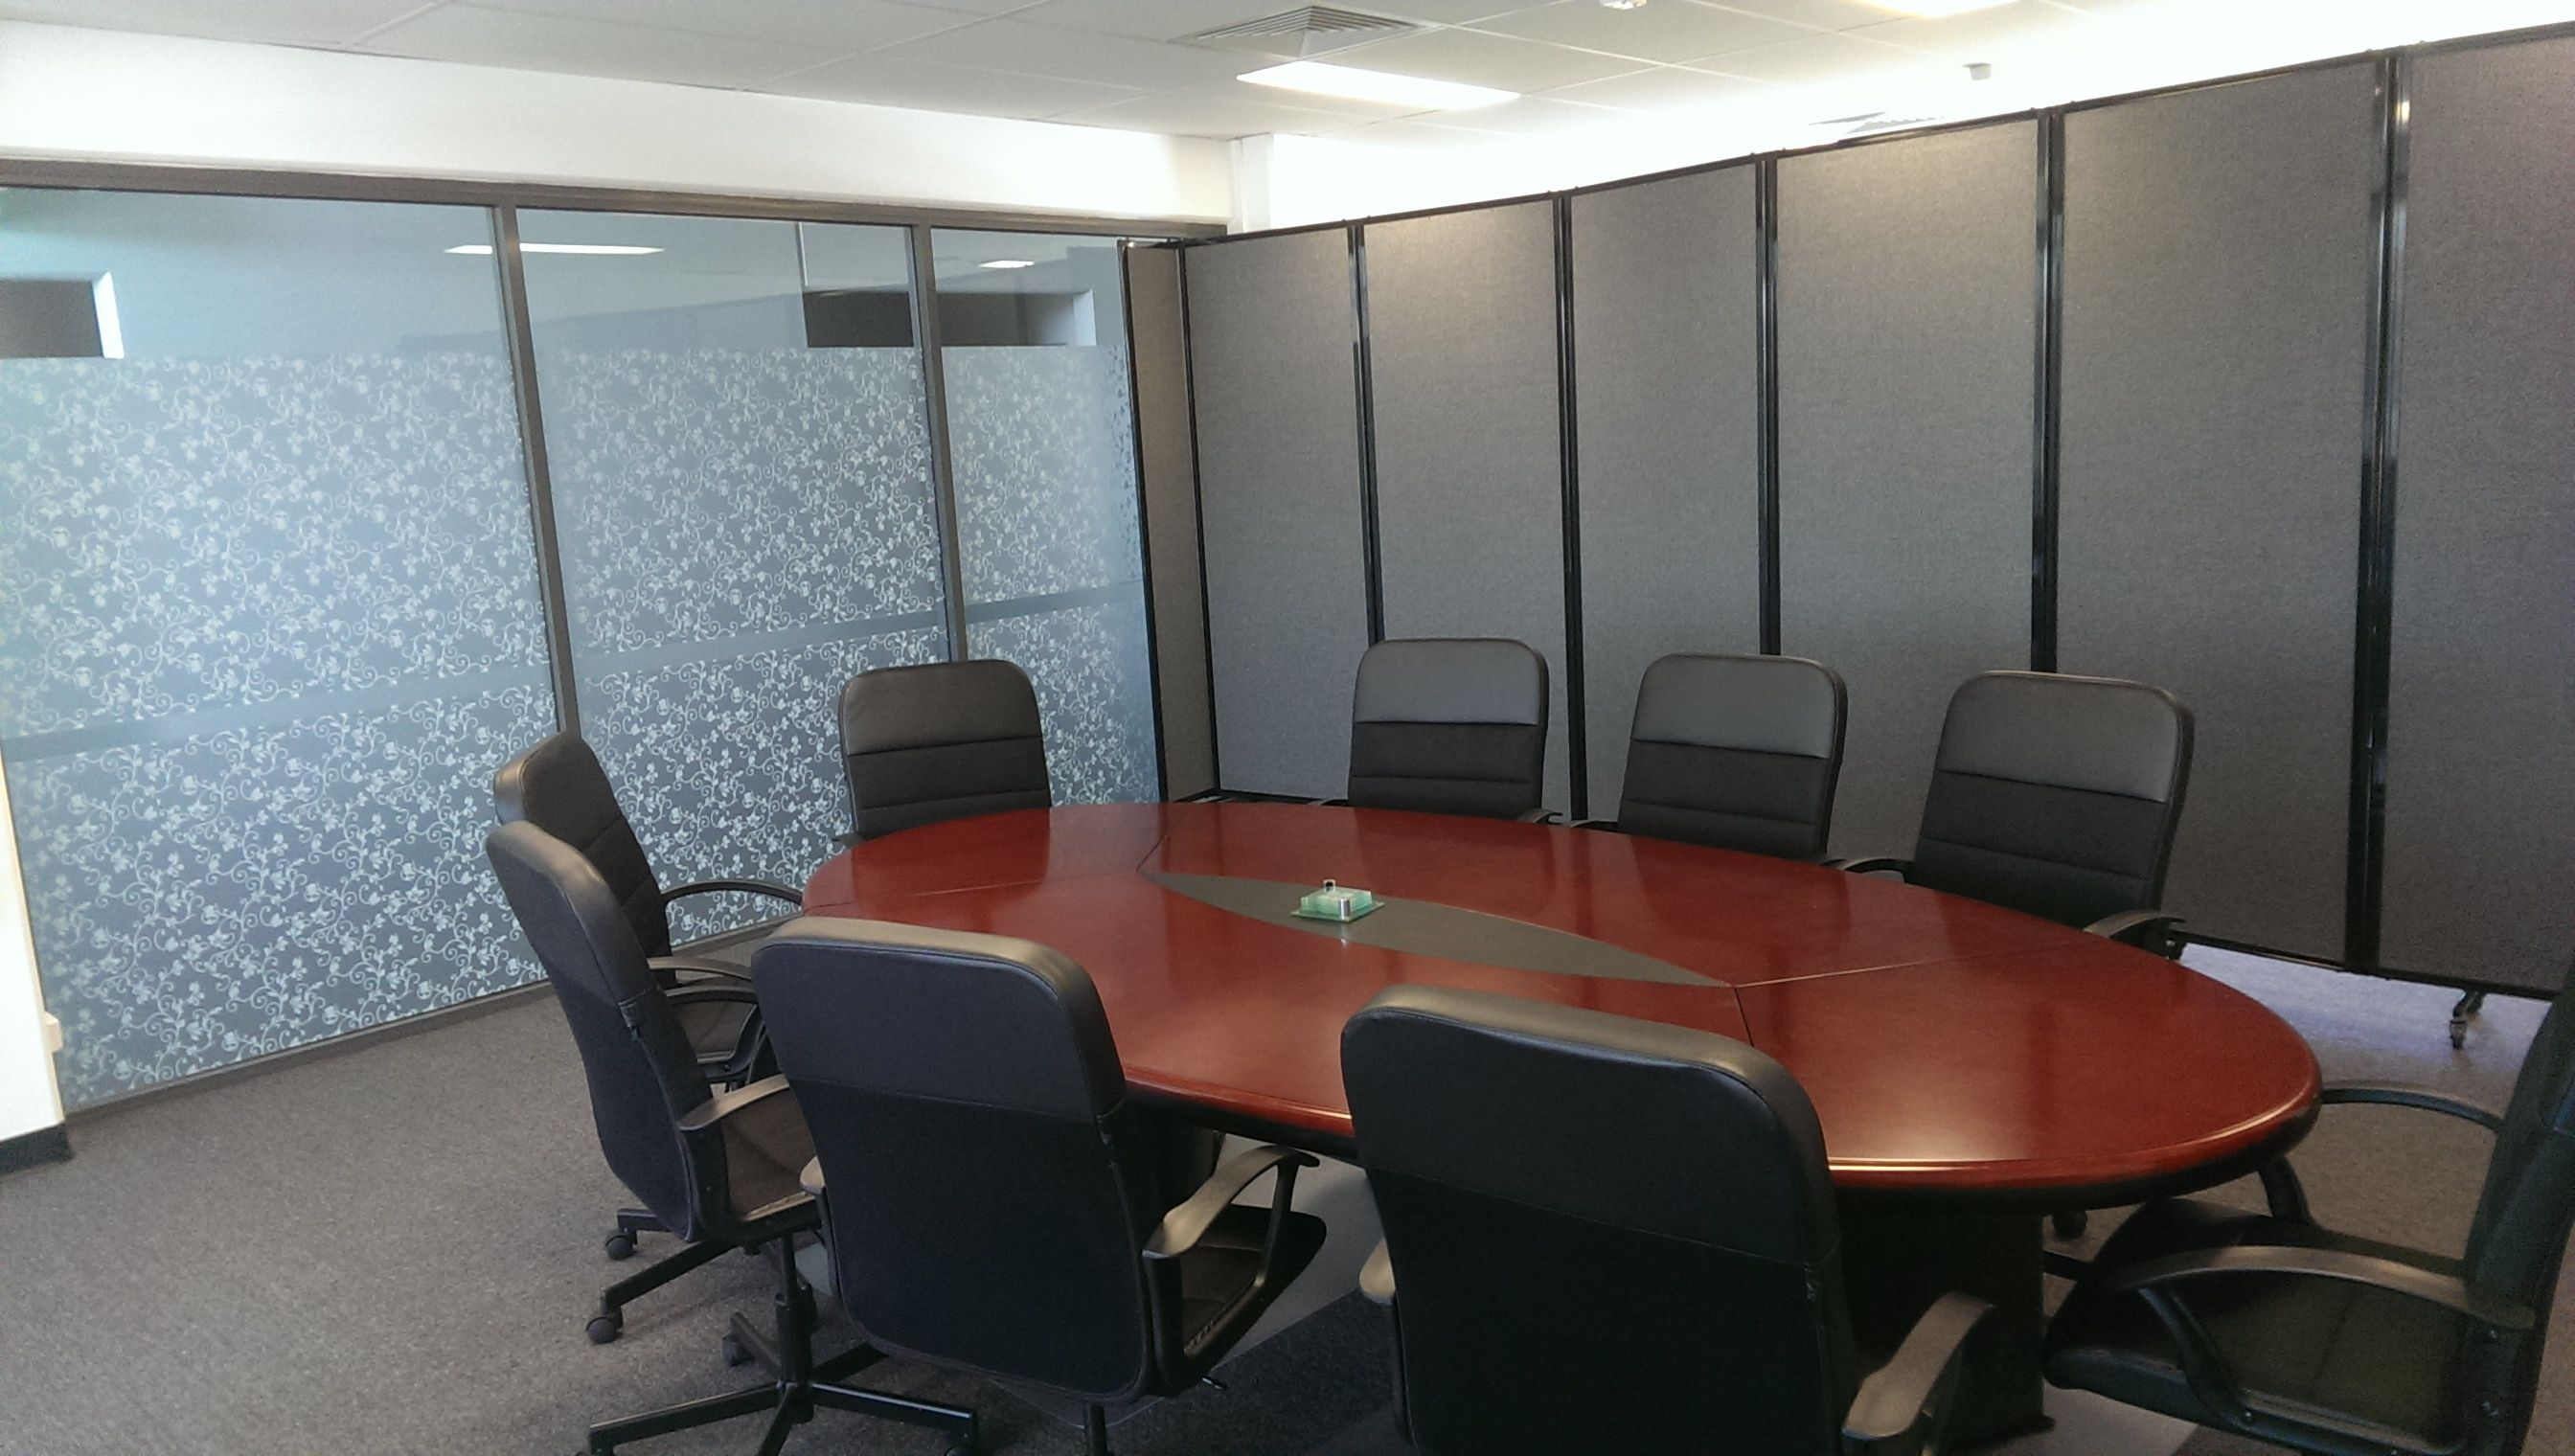 8 Best Office Partitions Images On Pinterest | Office Partitions, Acacia  And Law